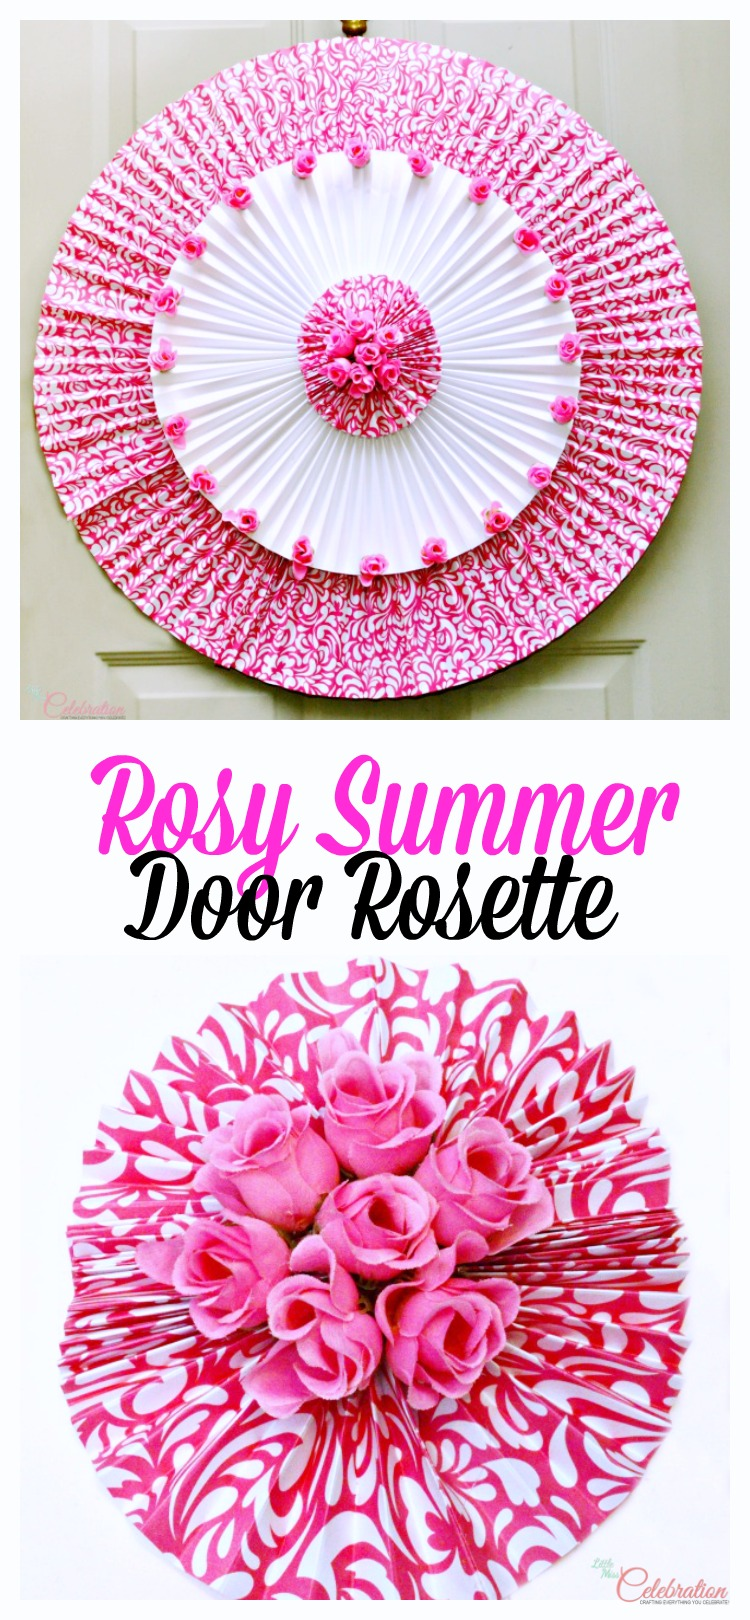 It's easy to make a big, happy Rosy Summer Door Rosette for a covered front door or wall - no pruning required! At littlemisscelebration.com